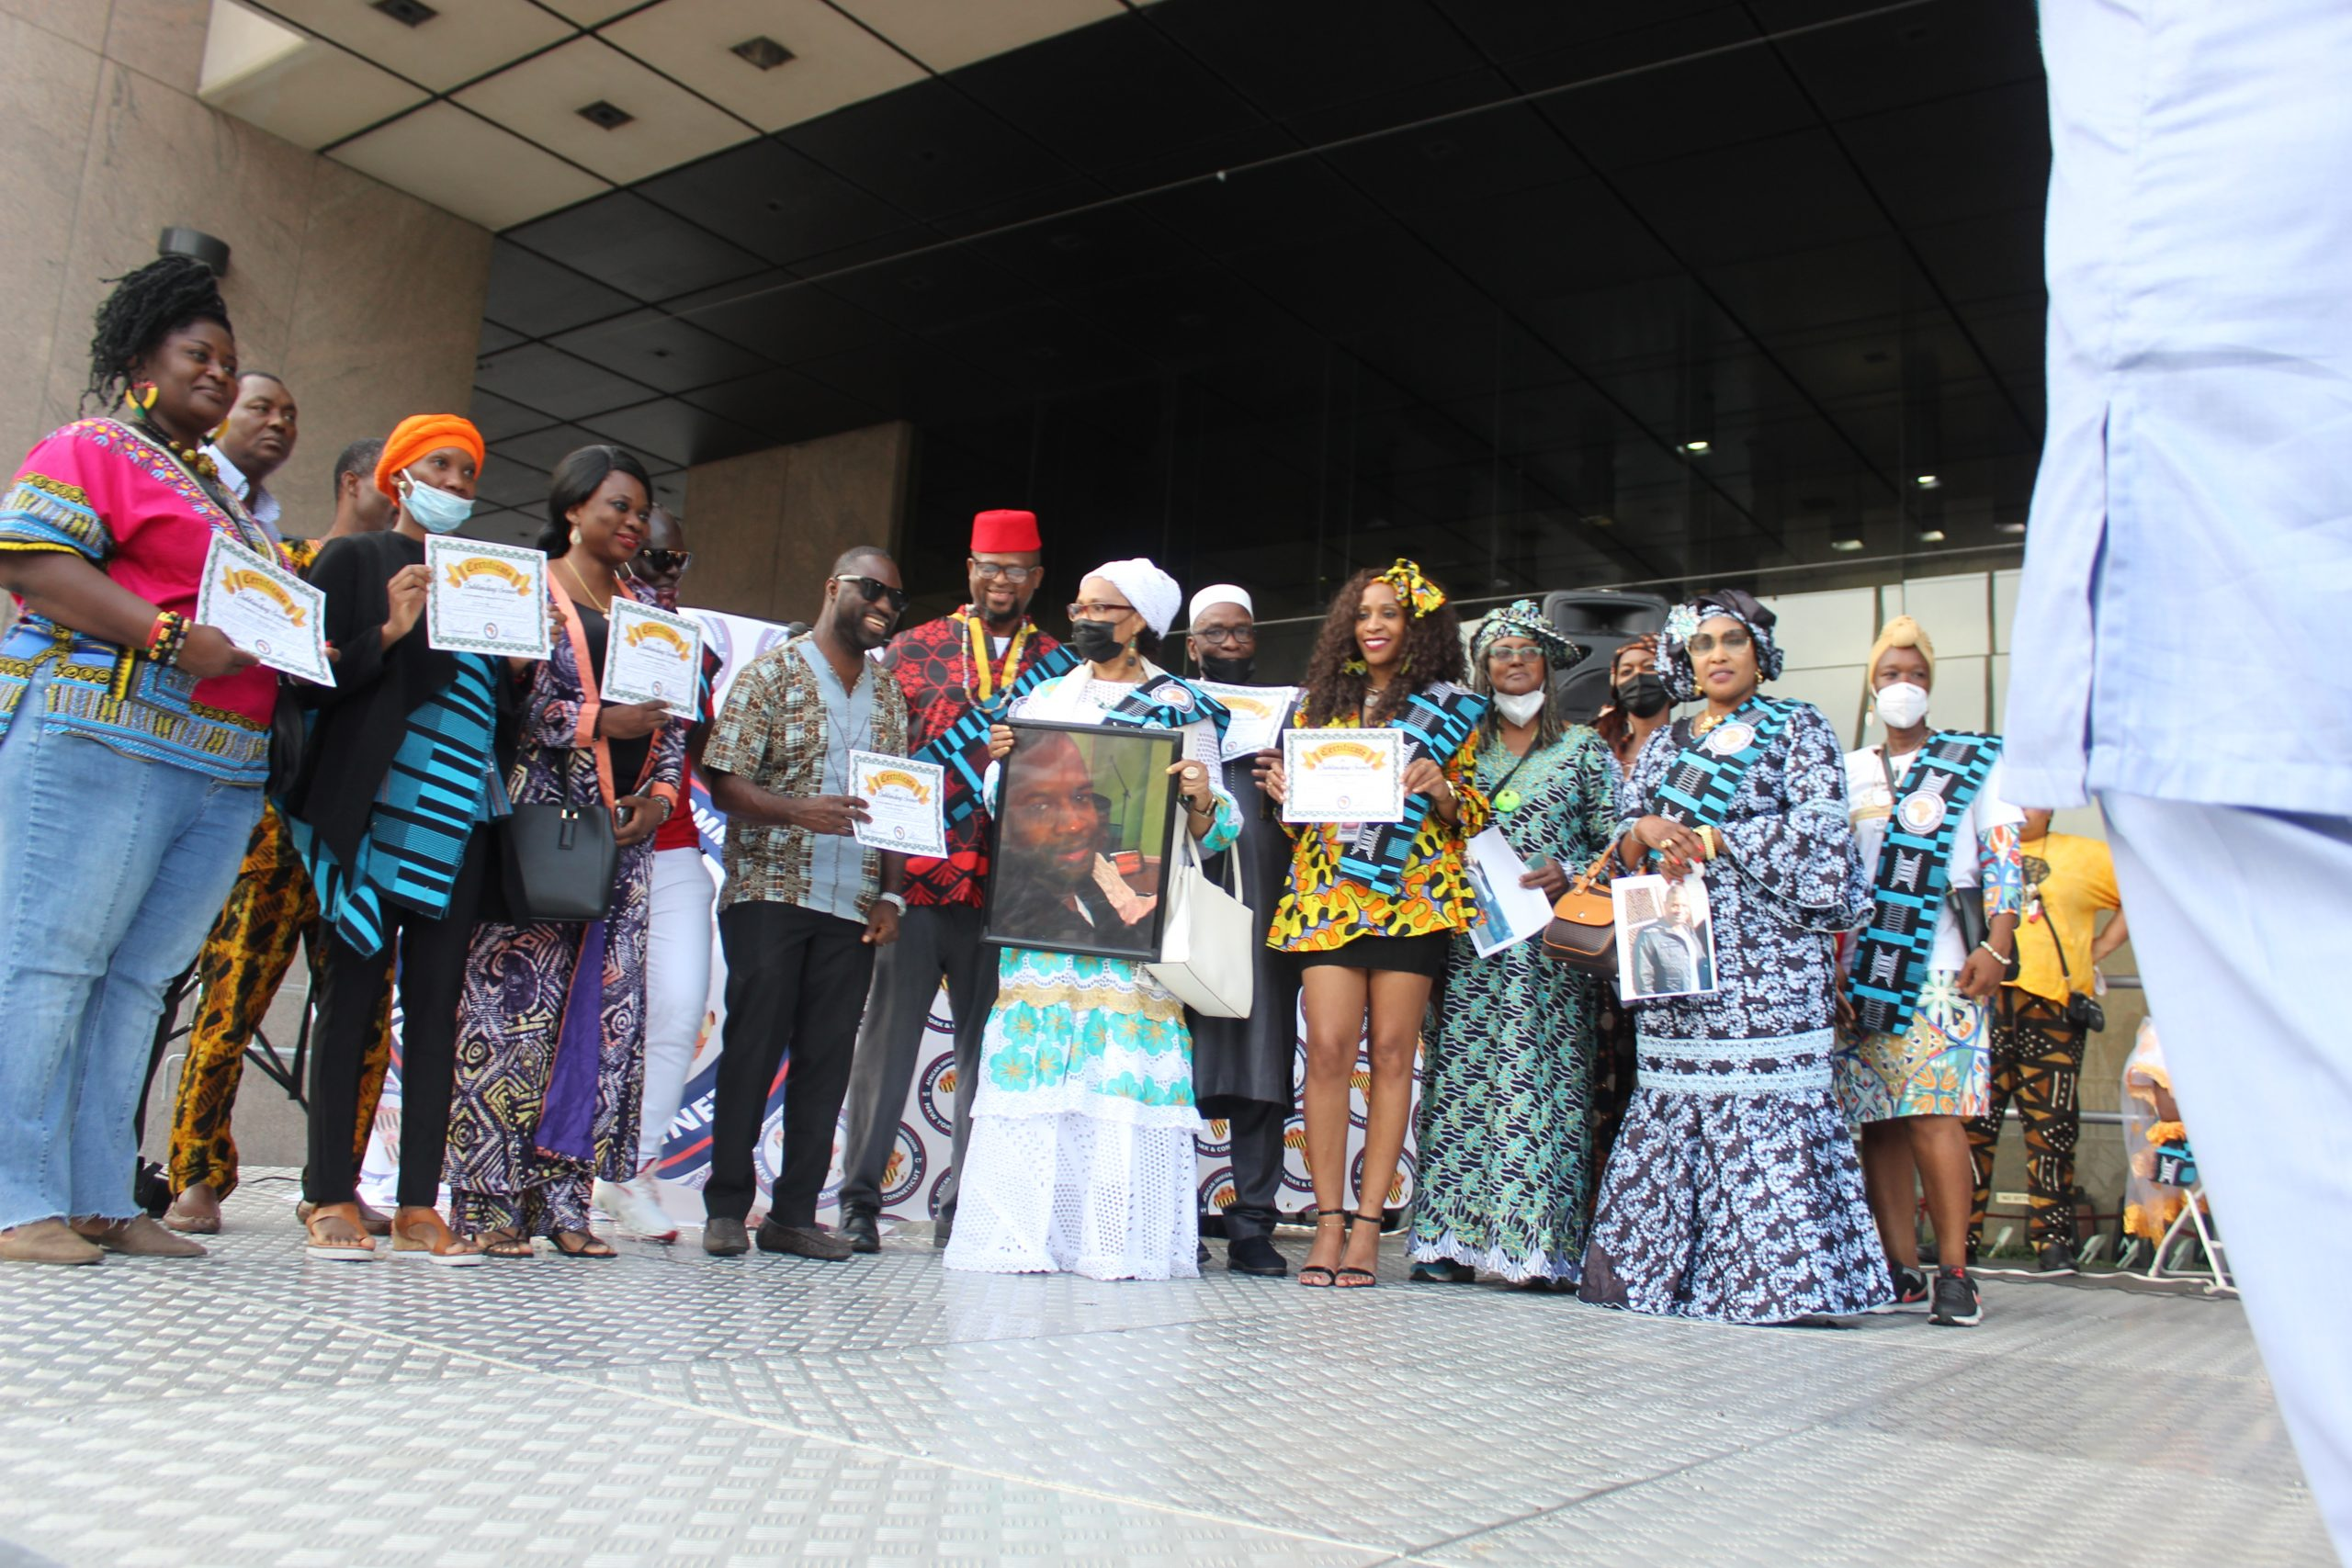 African heritage month parade and festival: The African Immigrants' Commission of New York, and Connecticut honored 70 people